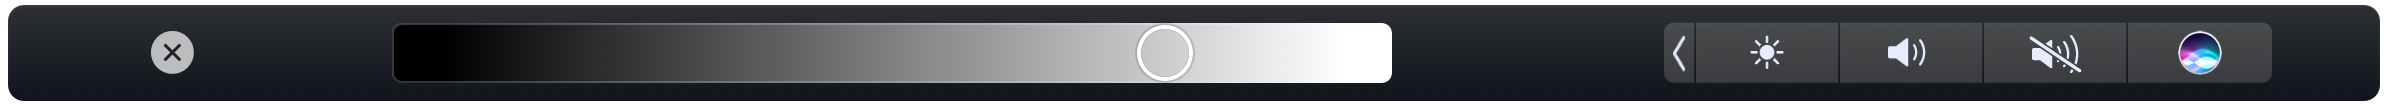 The Sketchbook Pro Luminance slider in the Touch Bar